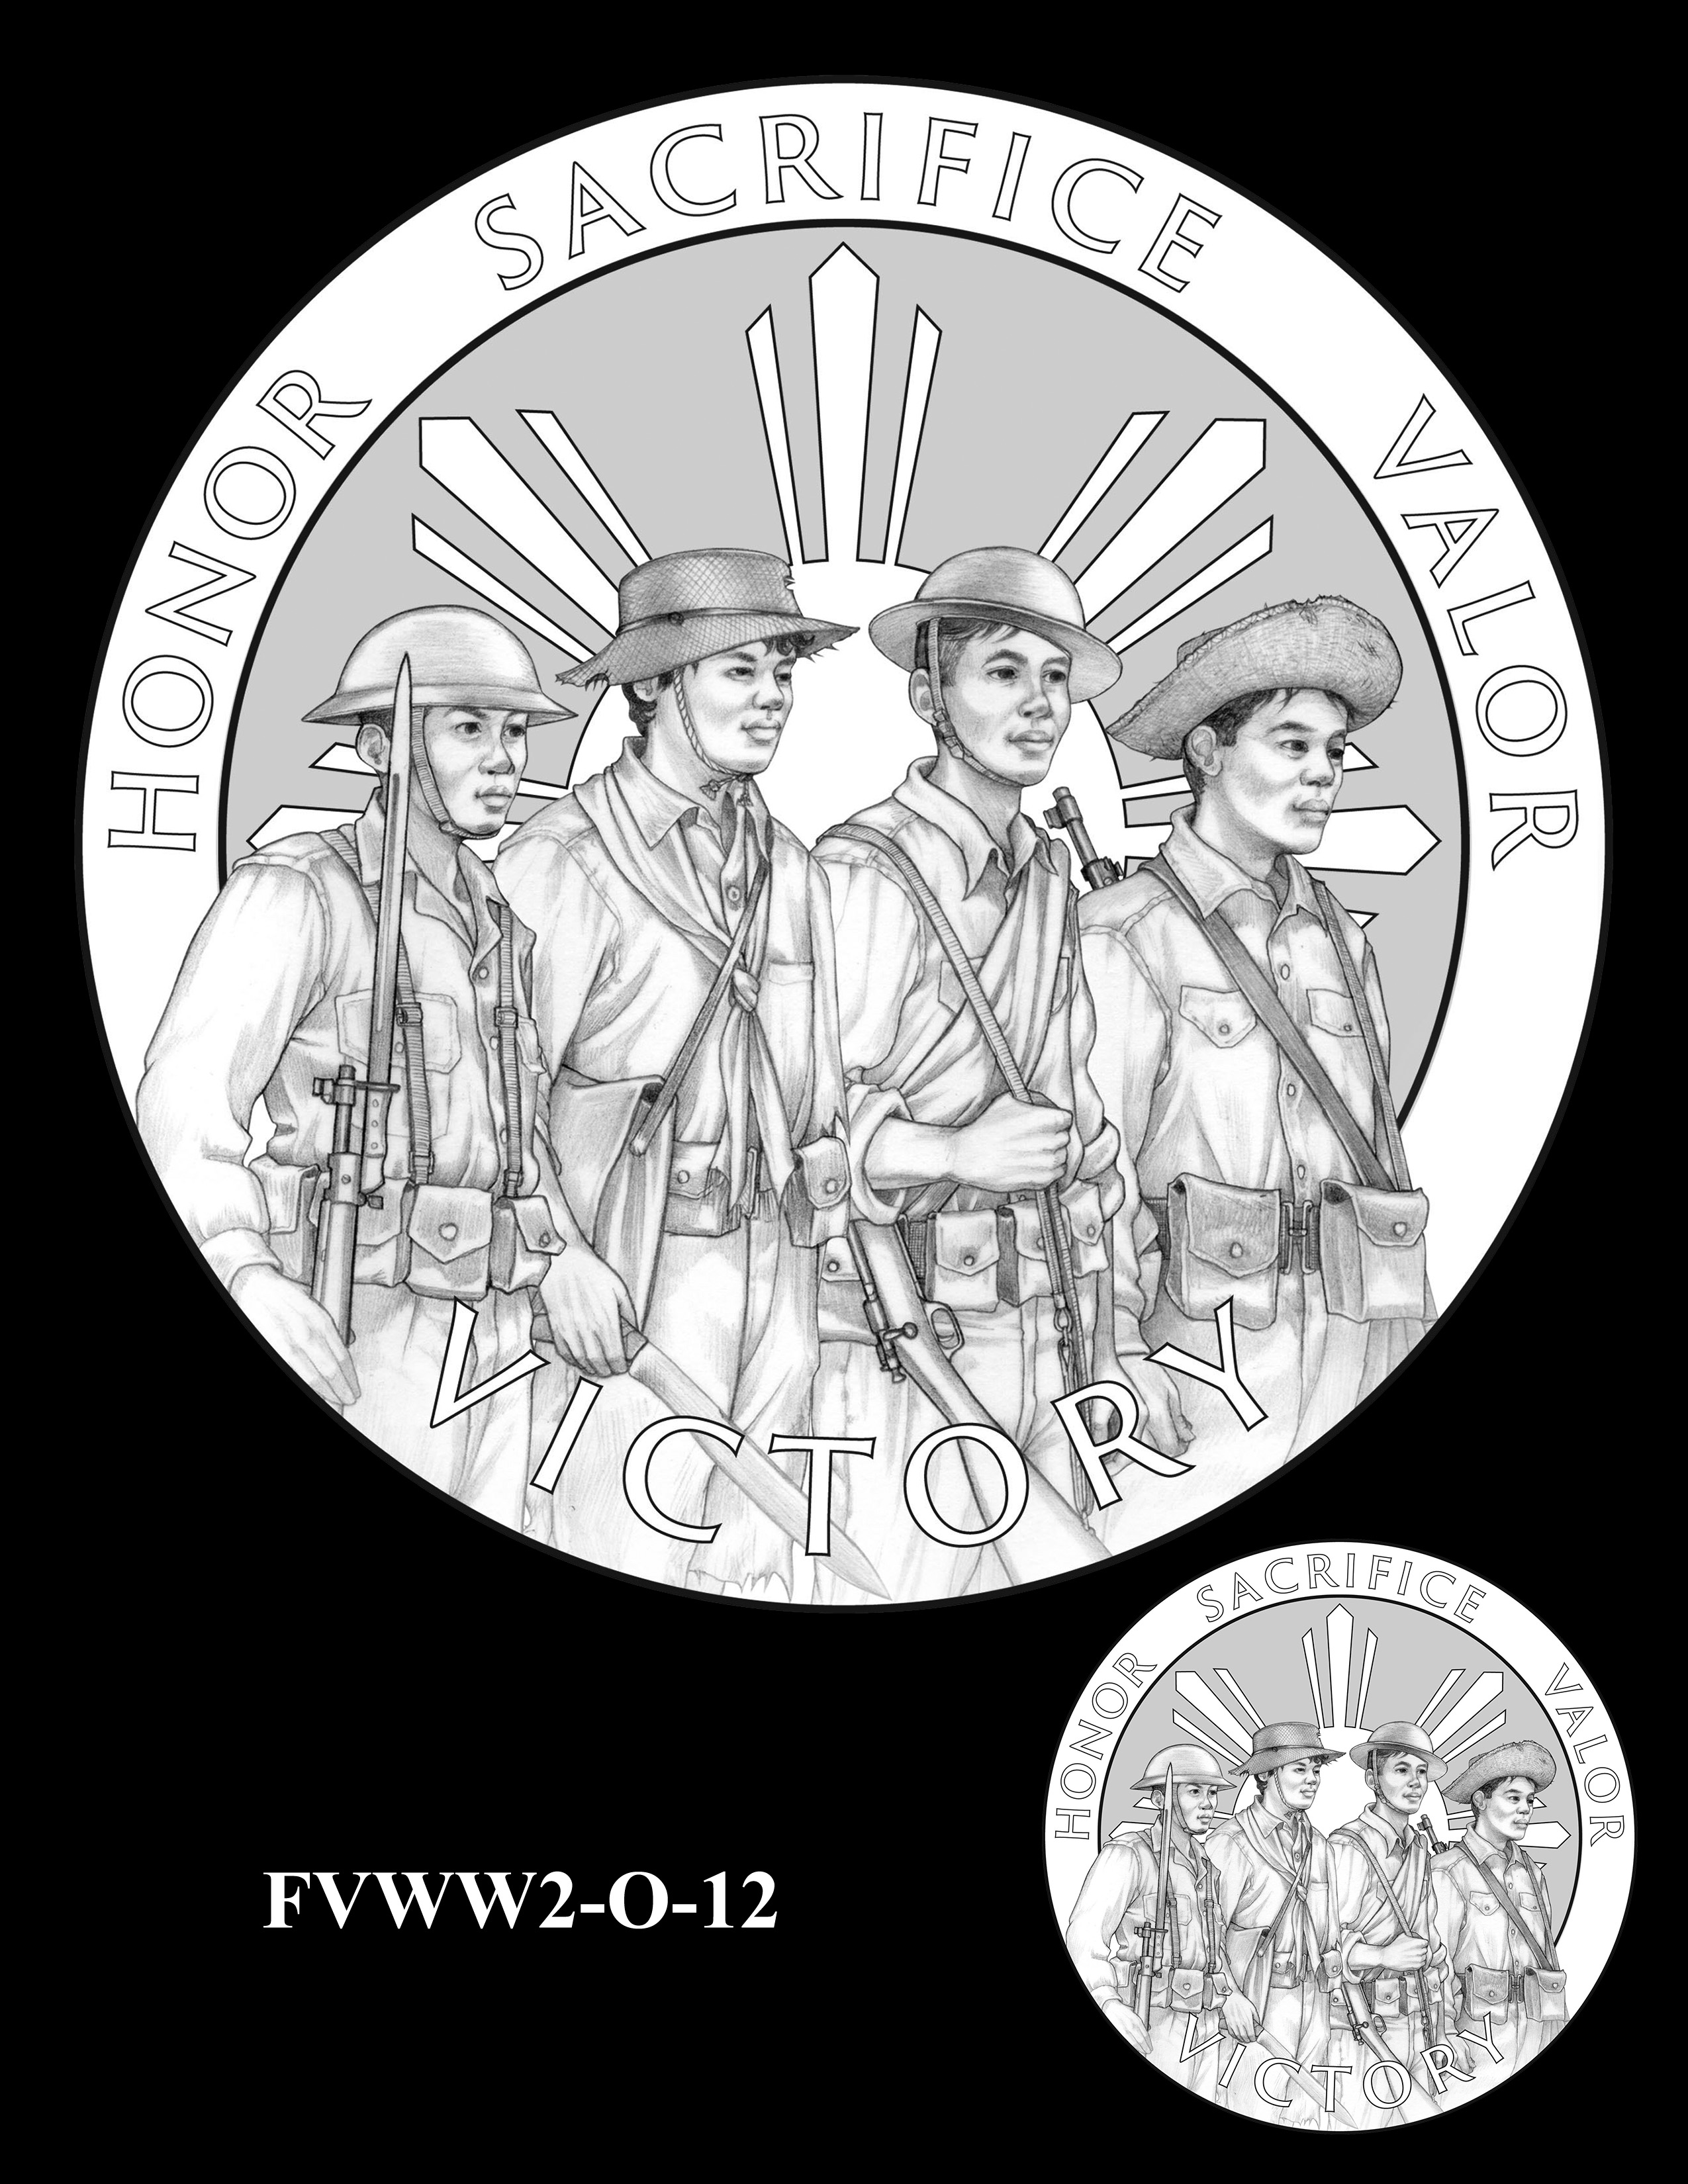 FVWW2-O-12 -- Filipino Veterans of World War II Congressional Gold Medal